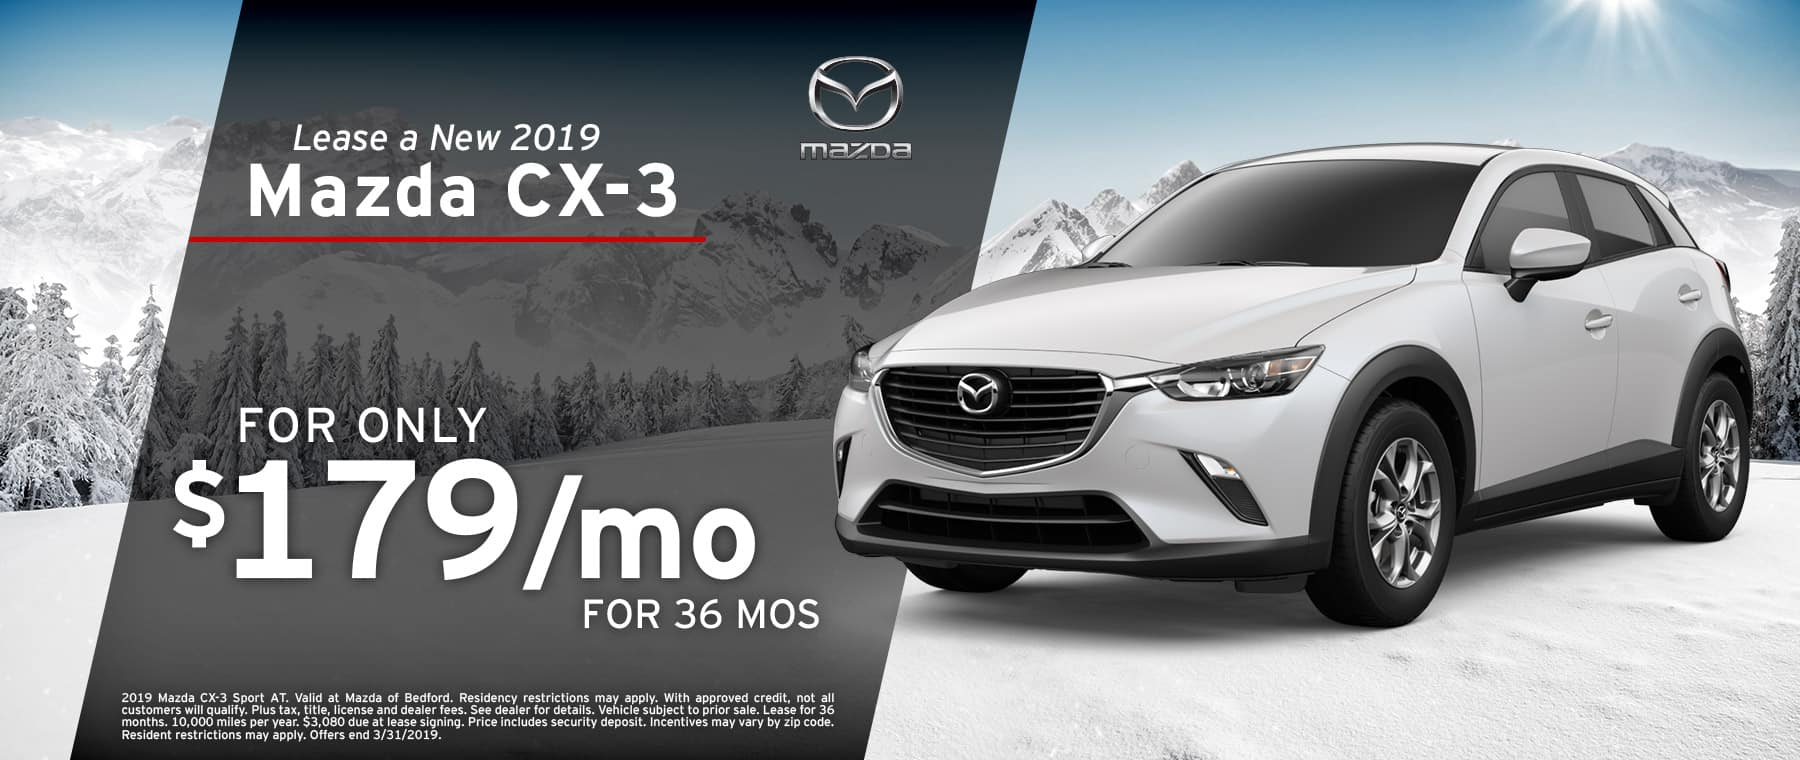 Save when you lease a 2019 Mazda CX-3 at Mazda of Bedford in Ohio